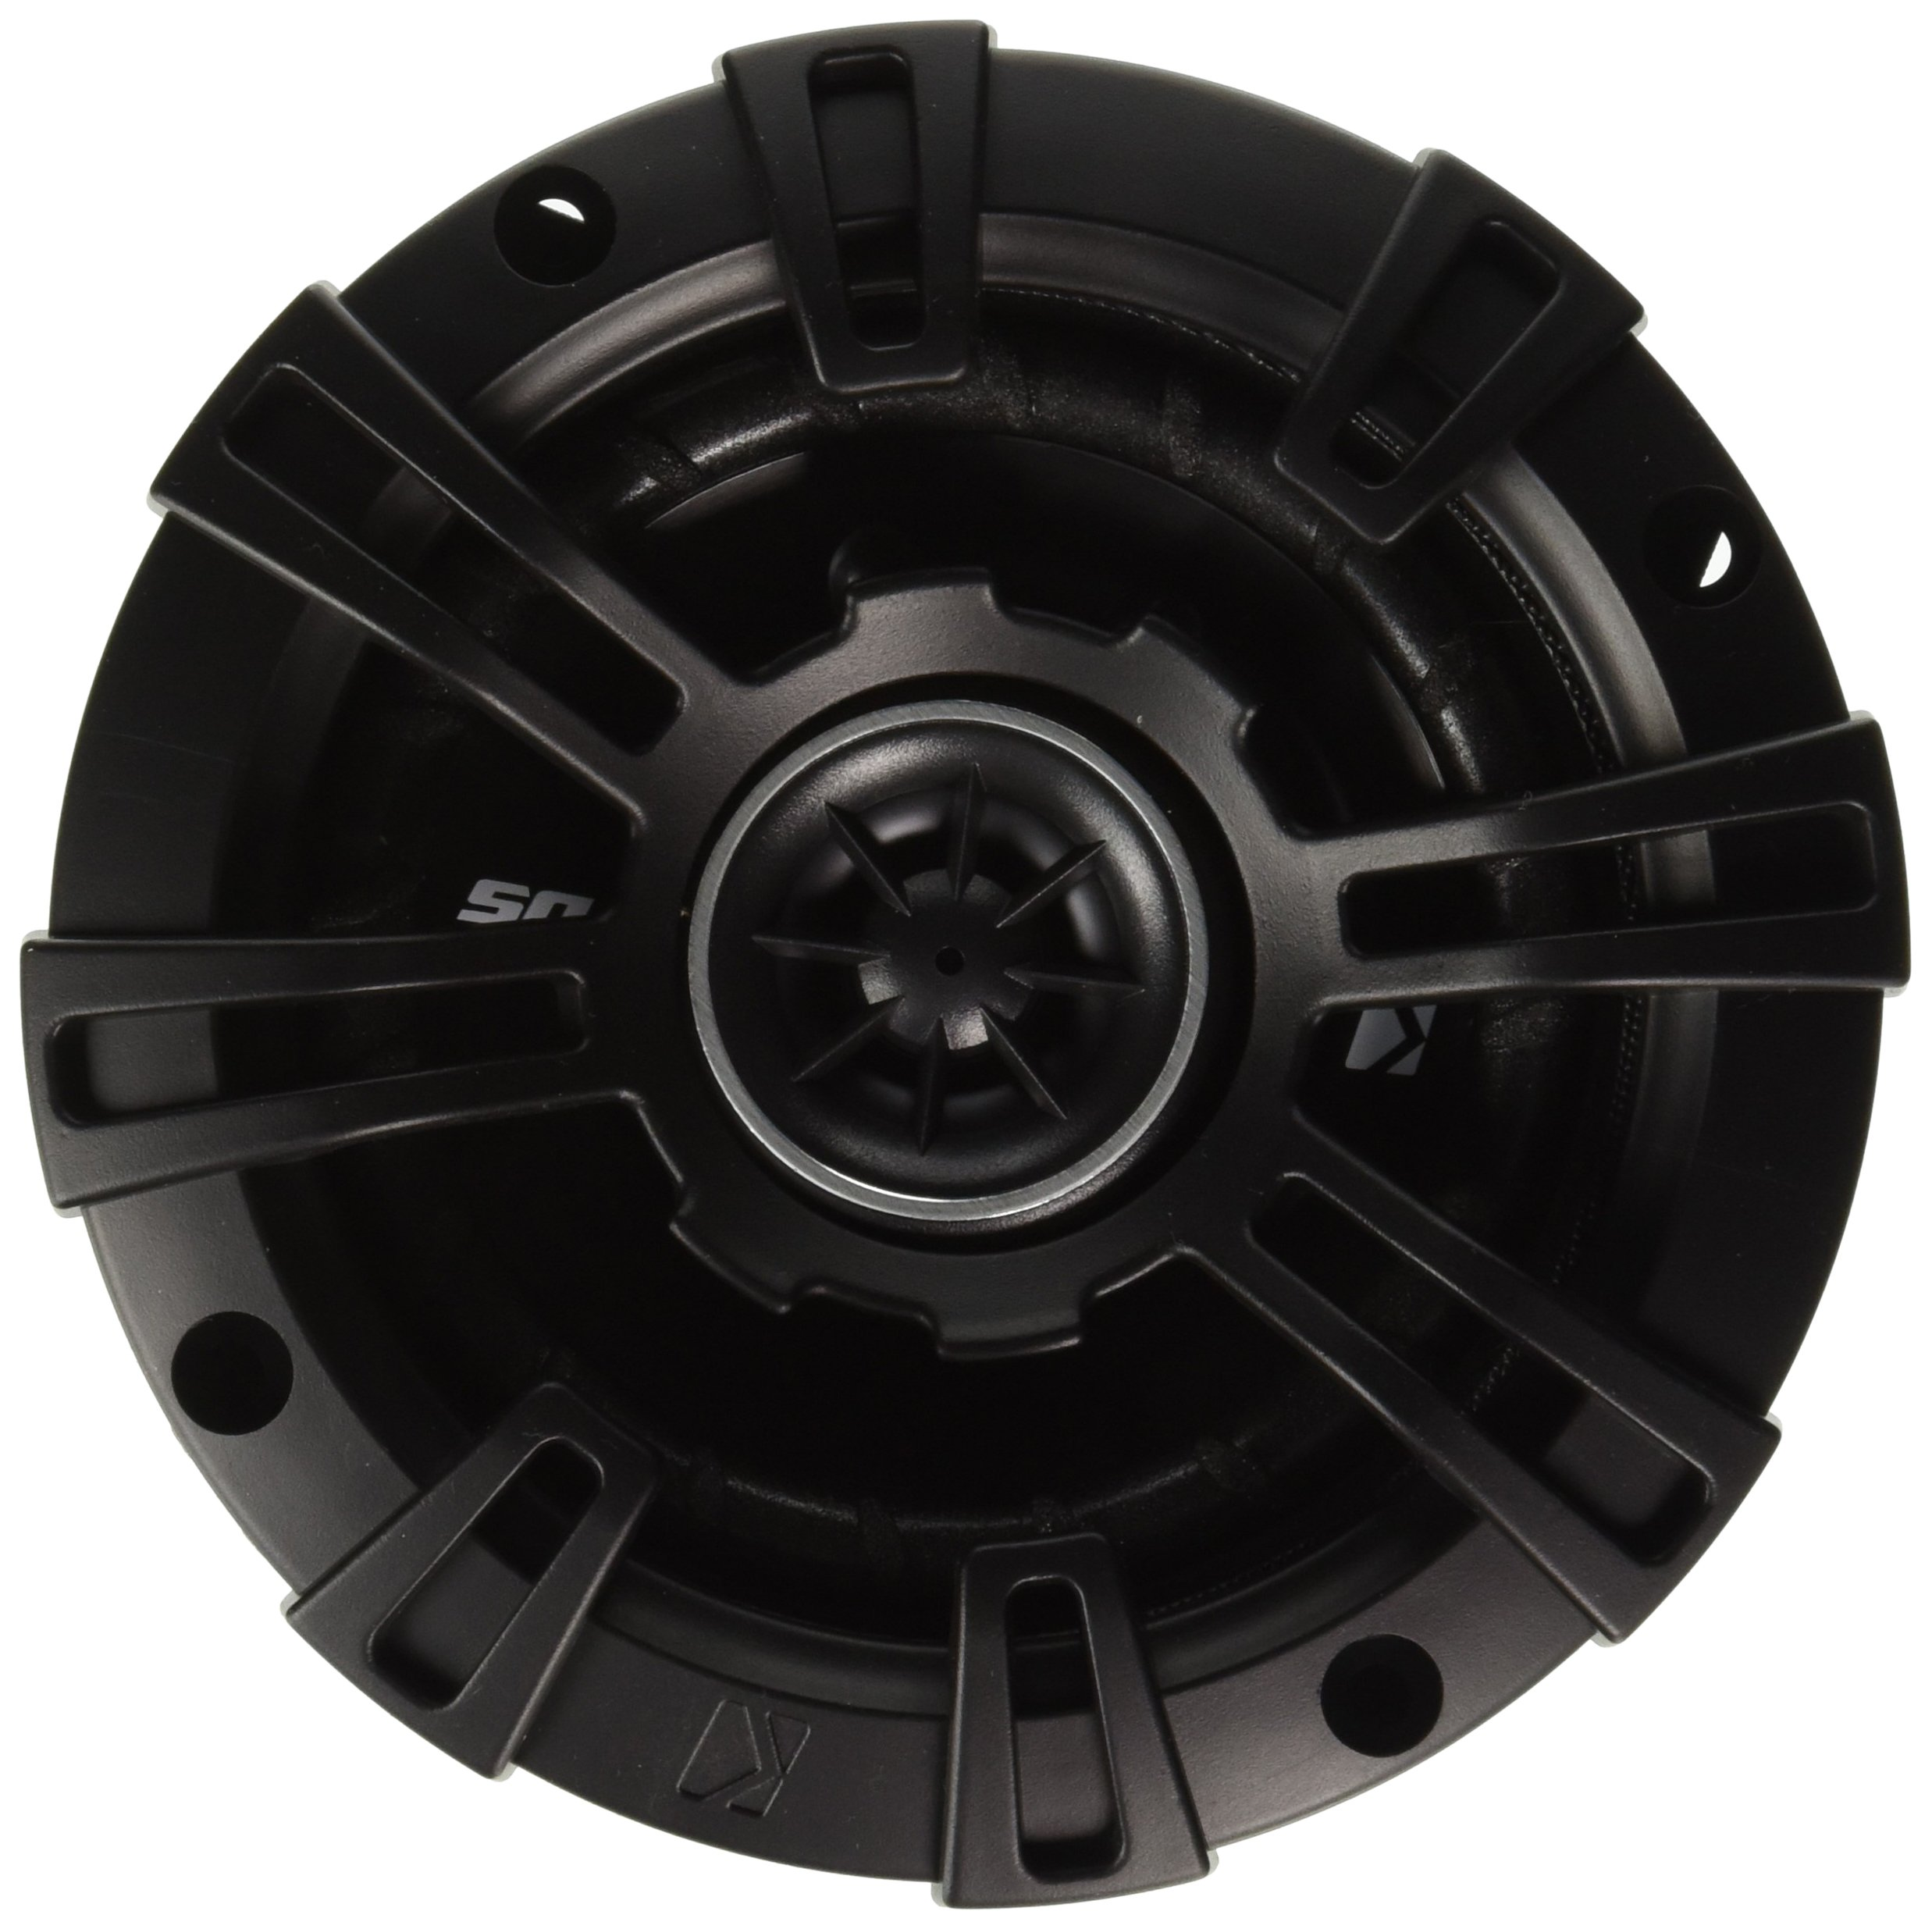 Kicker 43DSC44 D-Series 4-Inch 120 Watt 2-Way Coaxial Speakers (Pair) by KICKER